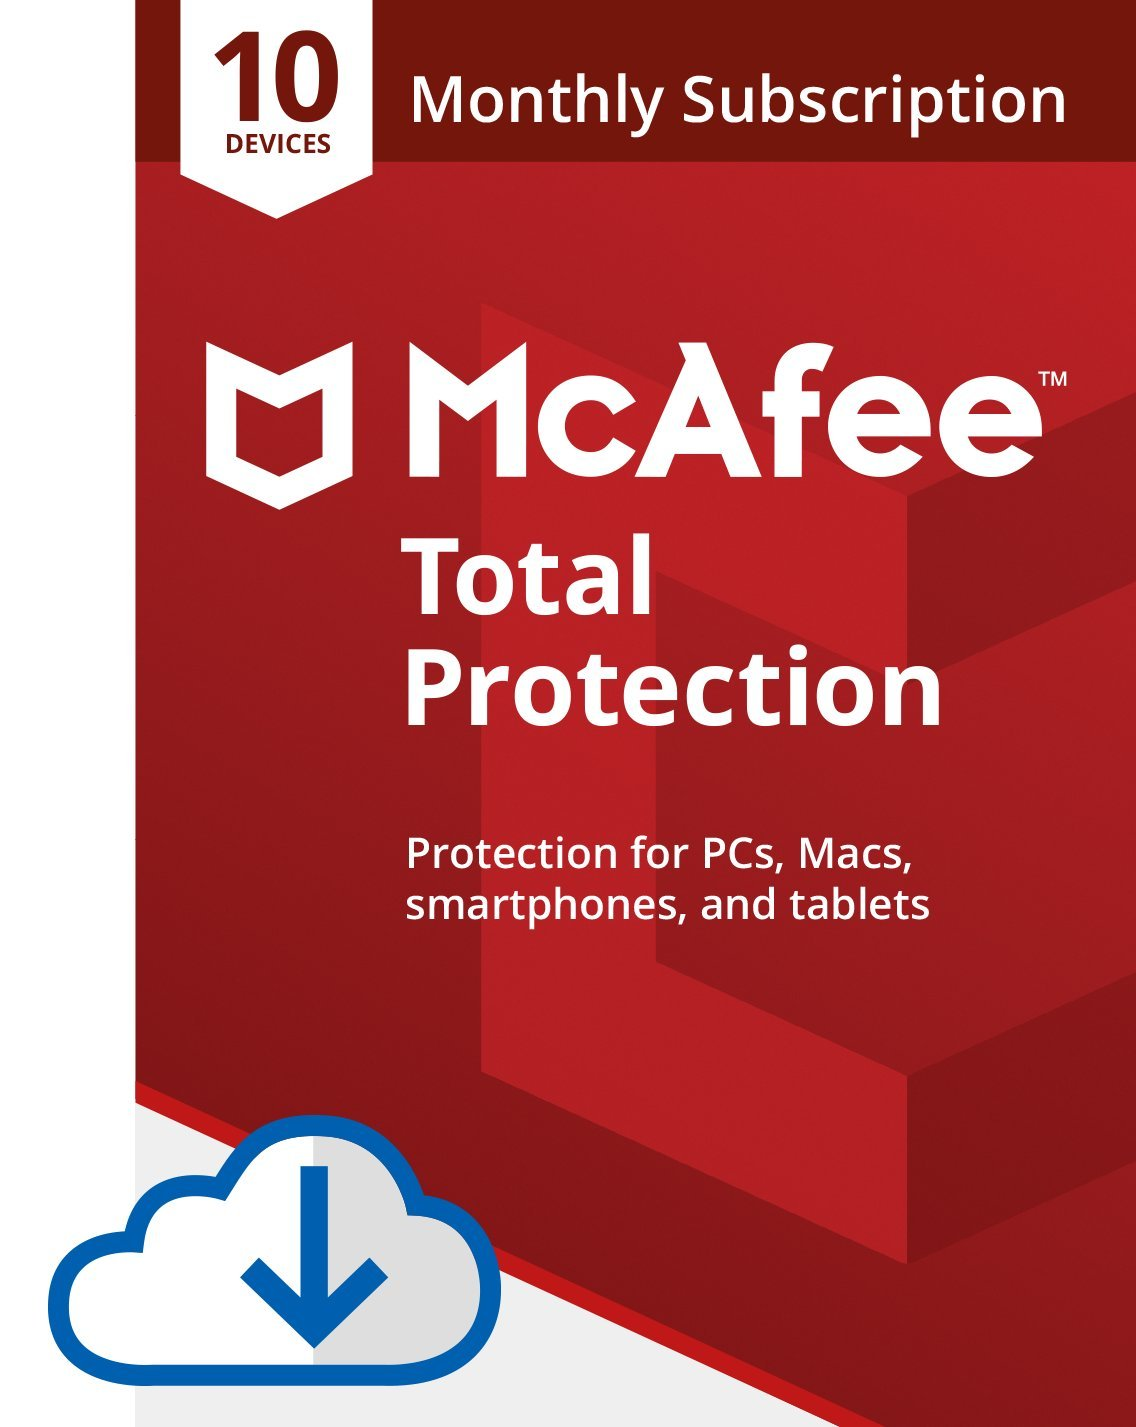 McAfee Total Protection 2020, 10 Device with Auto Renewal - Monthly, Antivirus Internet Security Software, Password Manager, Parental Control, Privacy, Amazon Exclusive Subscription